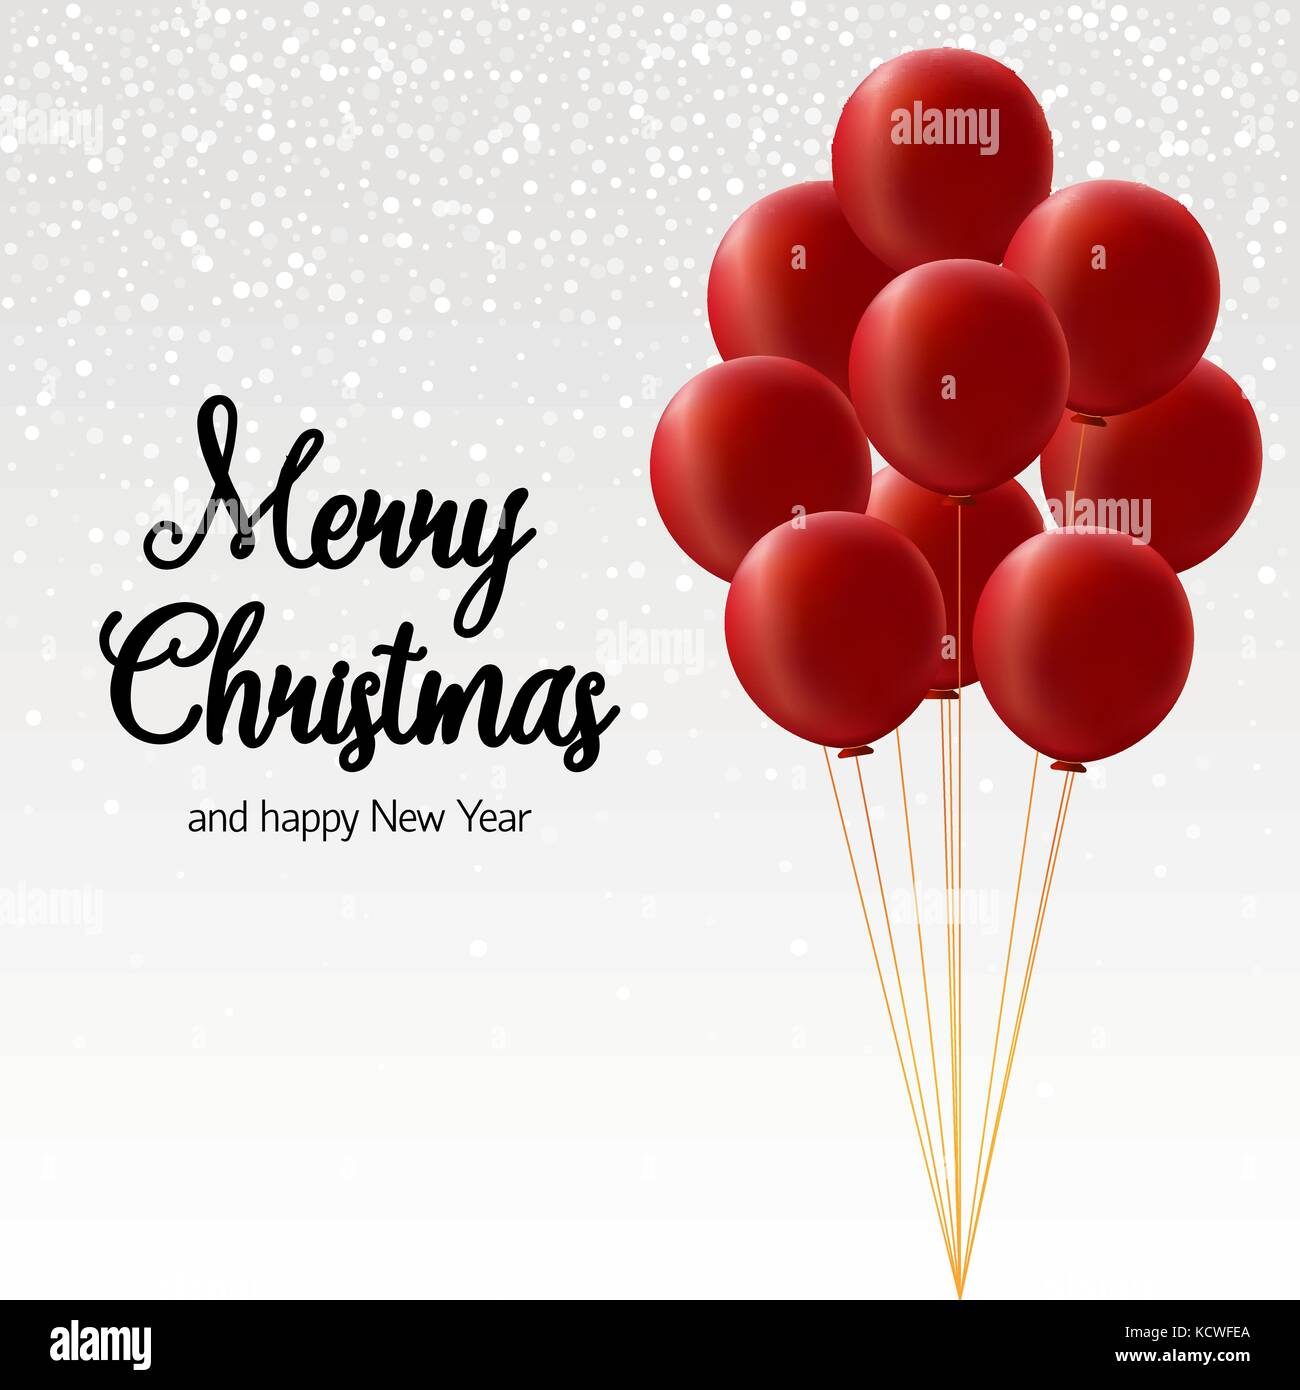 Merry Christmas Card Bundle Of Big Red Balloons On White Background